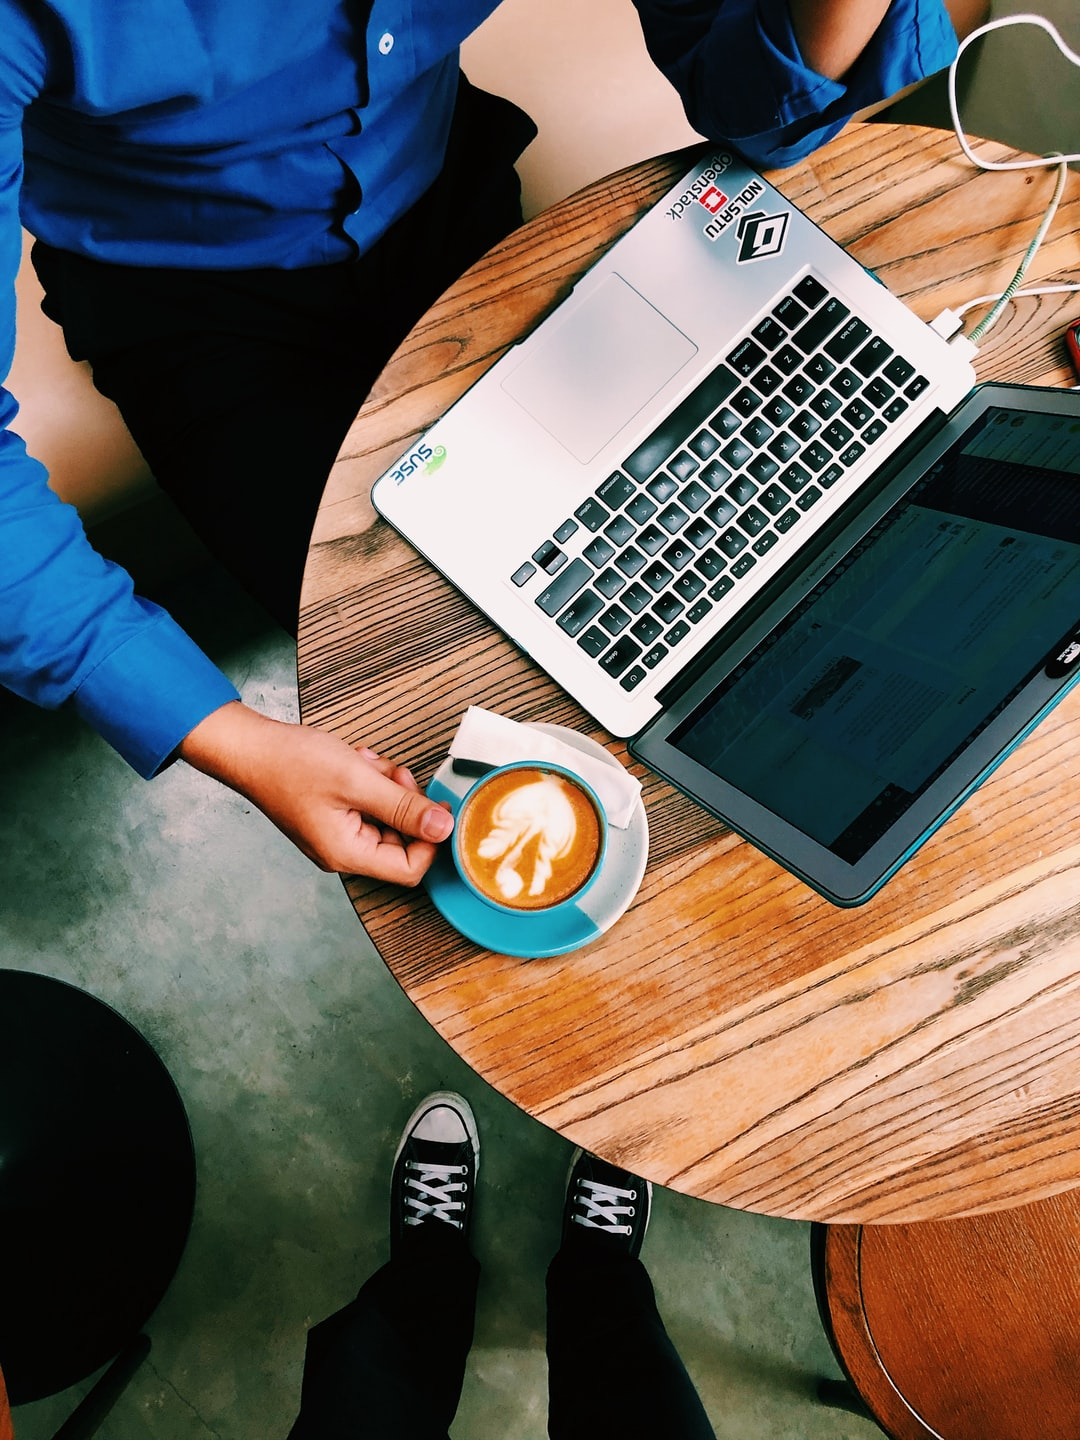 Most of remote workers that I've met spend their day on Coffee Shops with good atmosphere, good vibes, and good coffee.